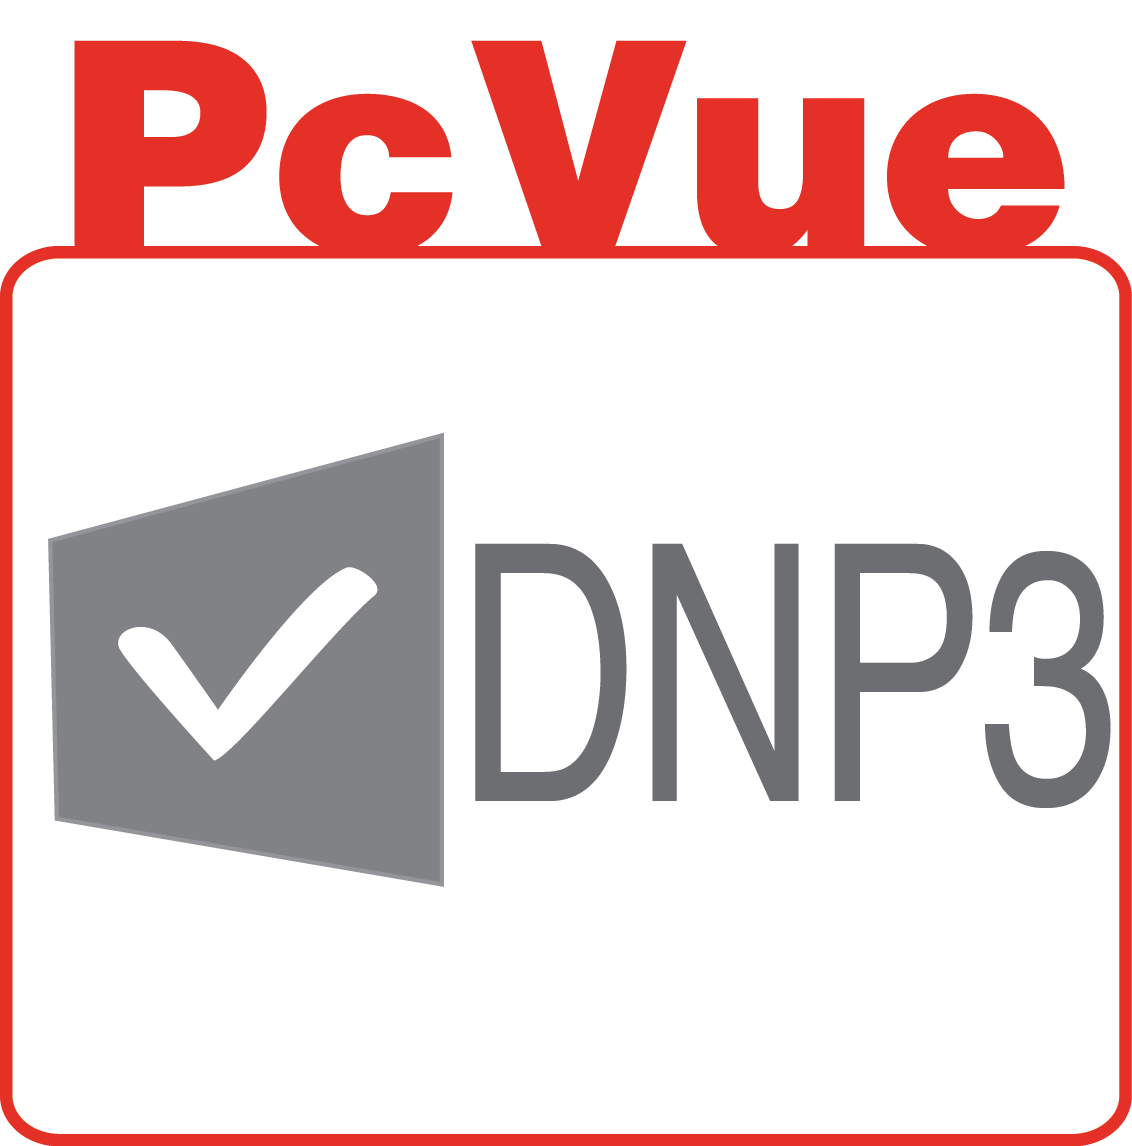 PcVue icon features DNP3